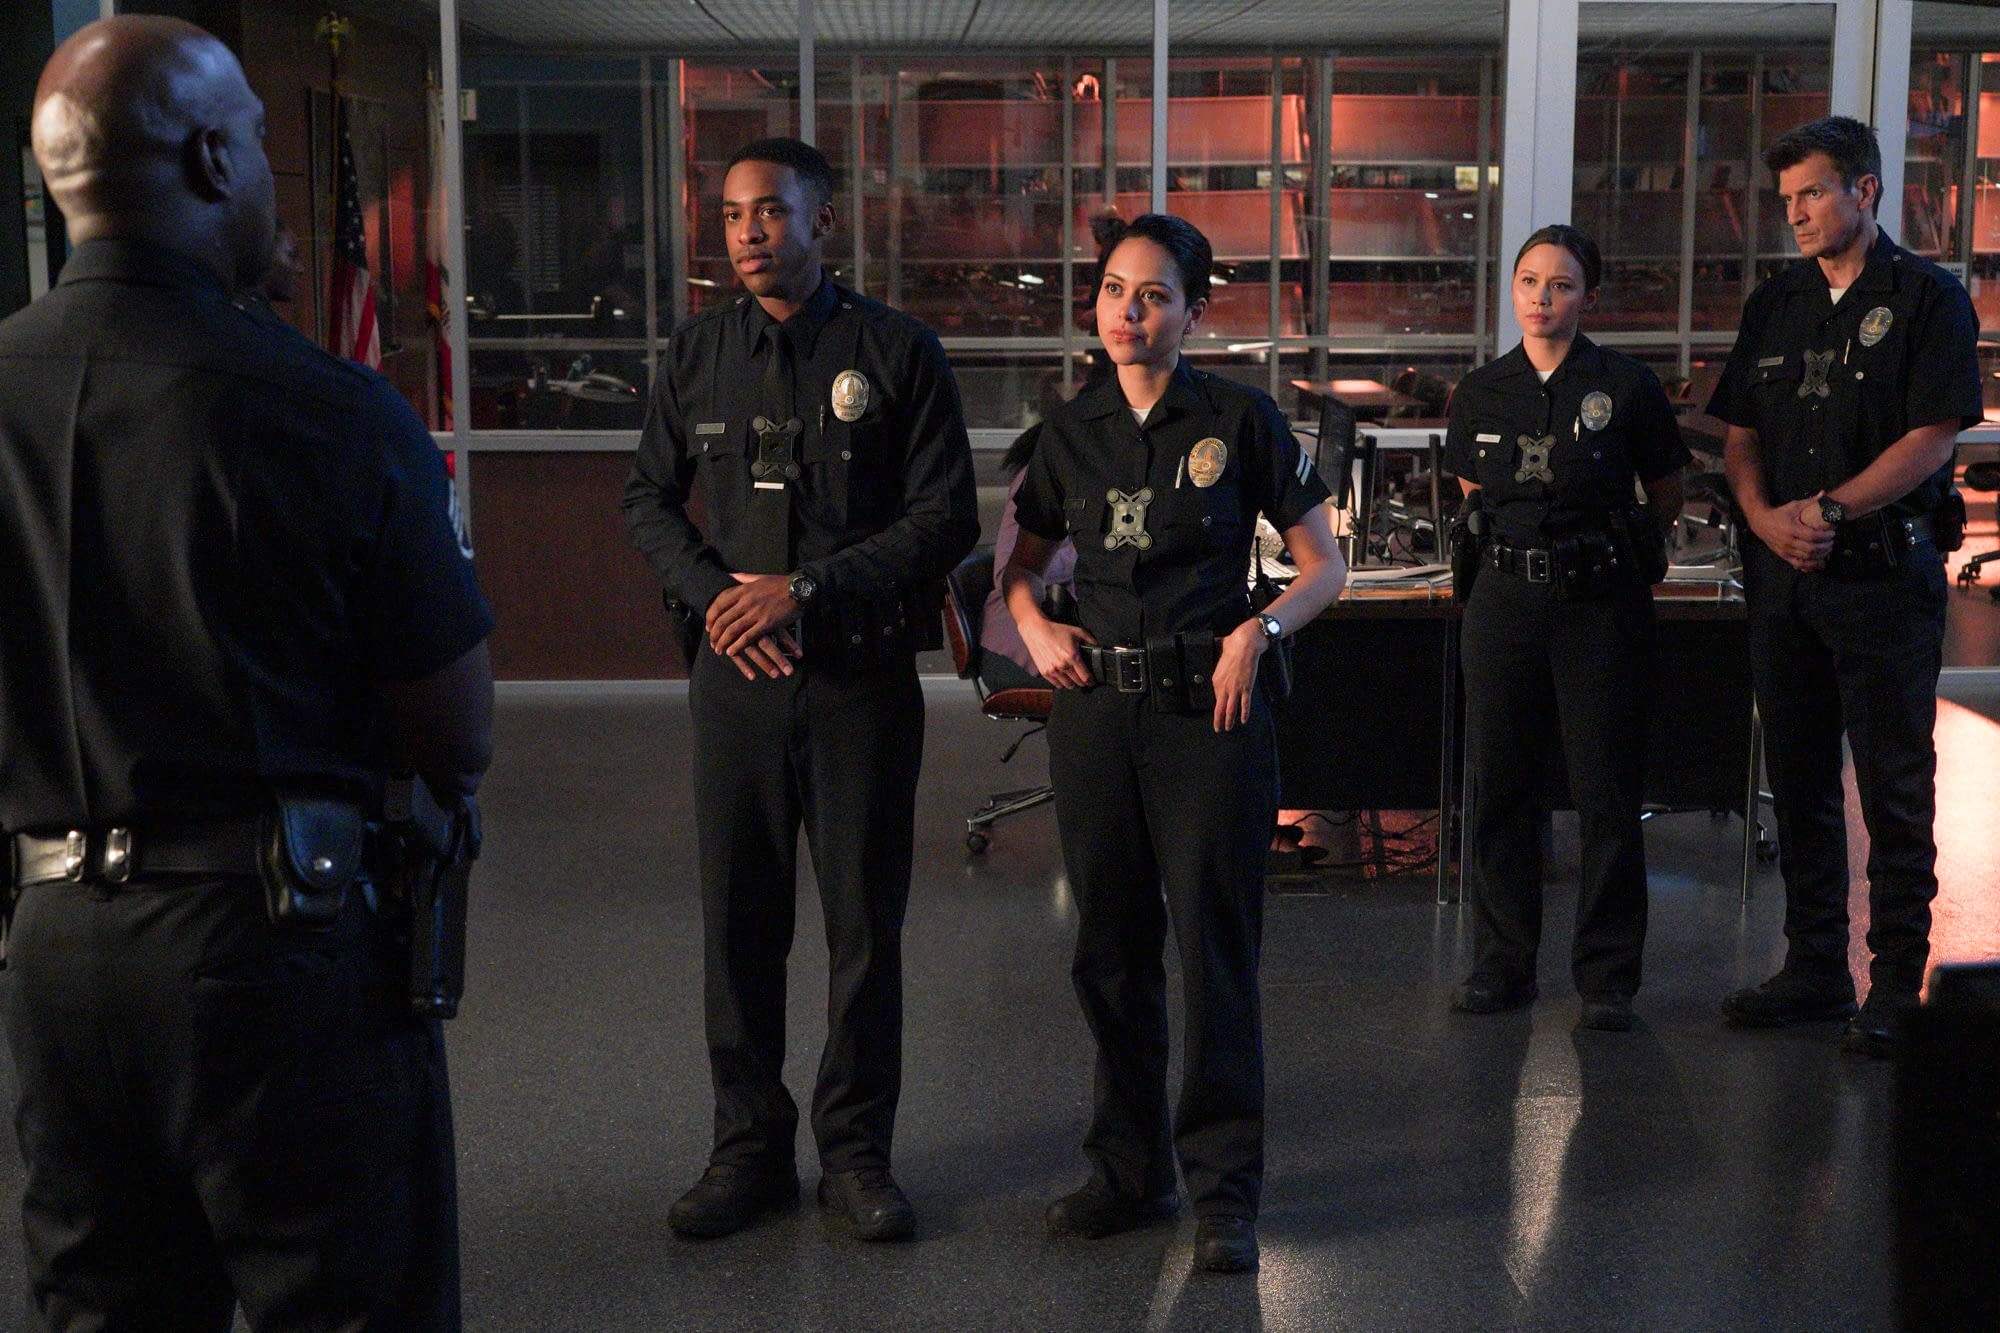 """The Rookie"" Season 2 Episode 5 ""Tough Love"" Preview: Is History Repeating Itself?"